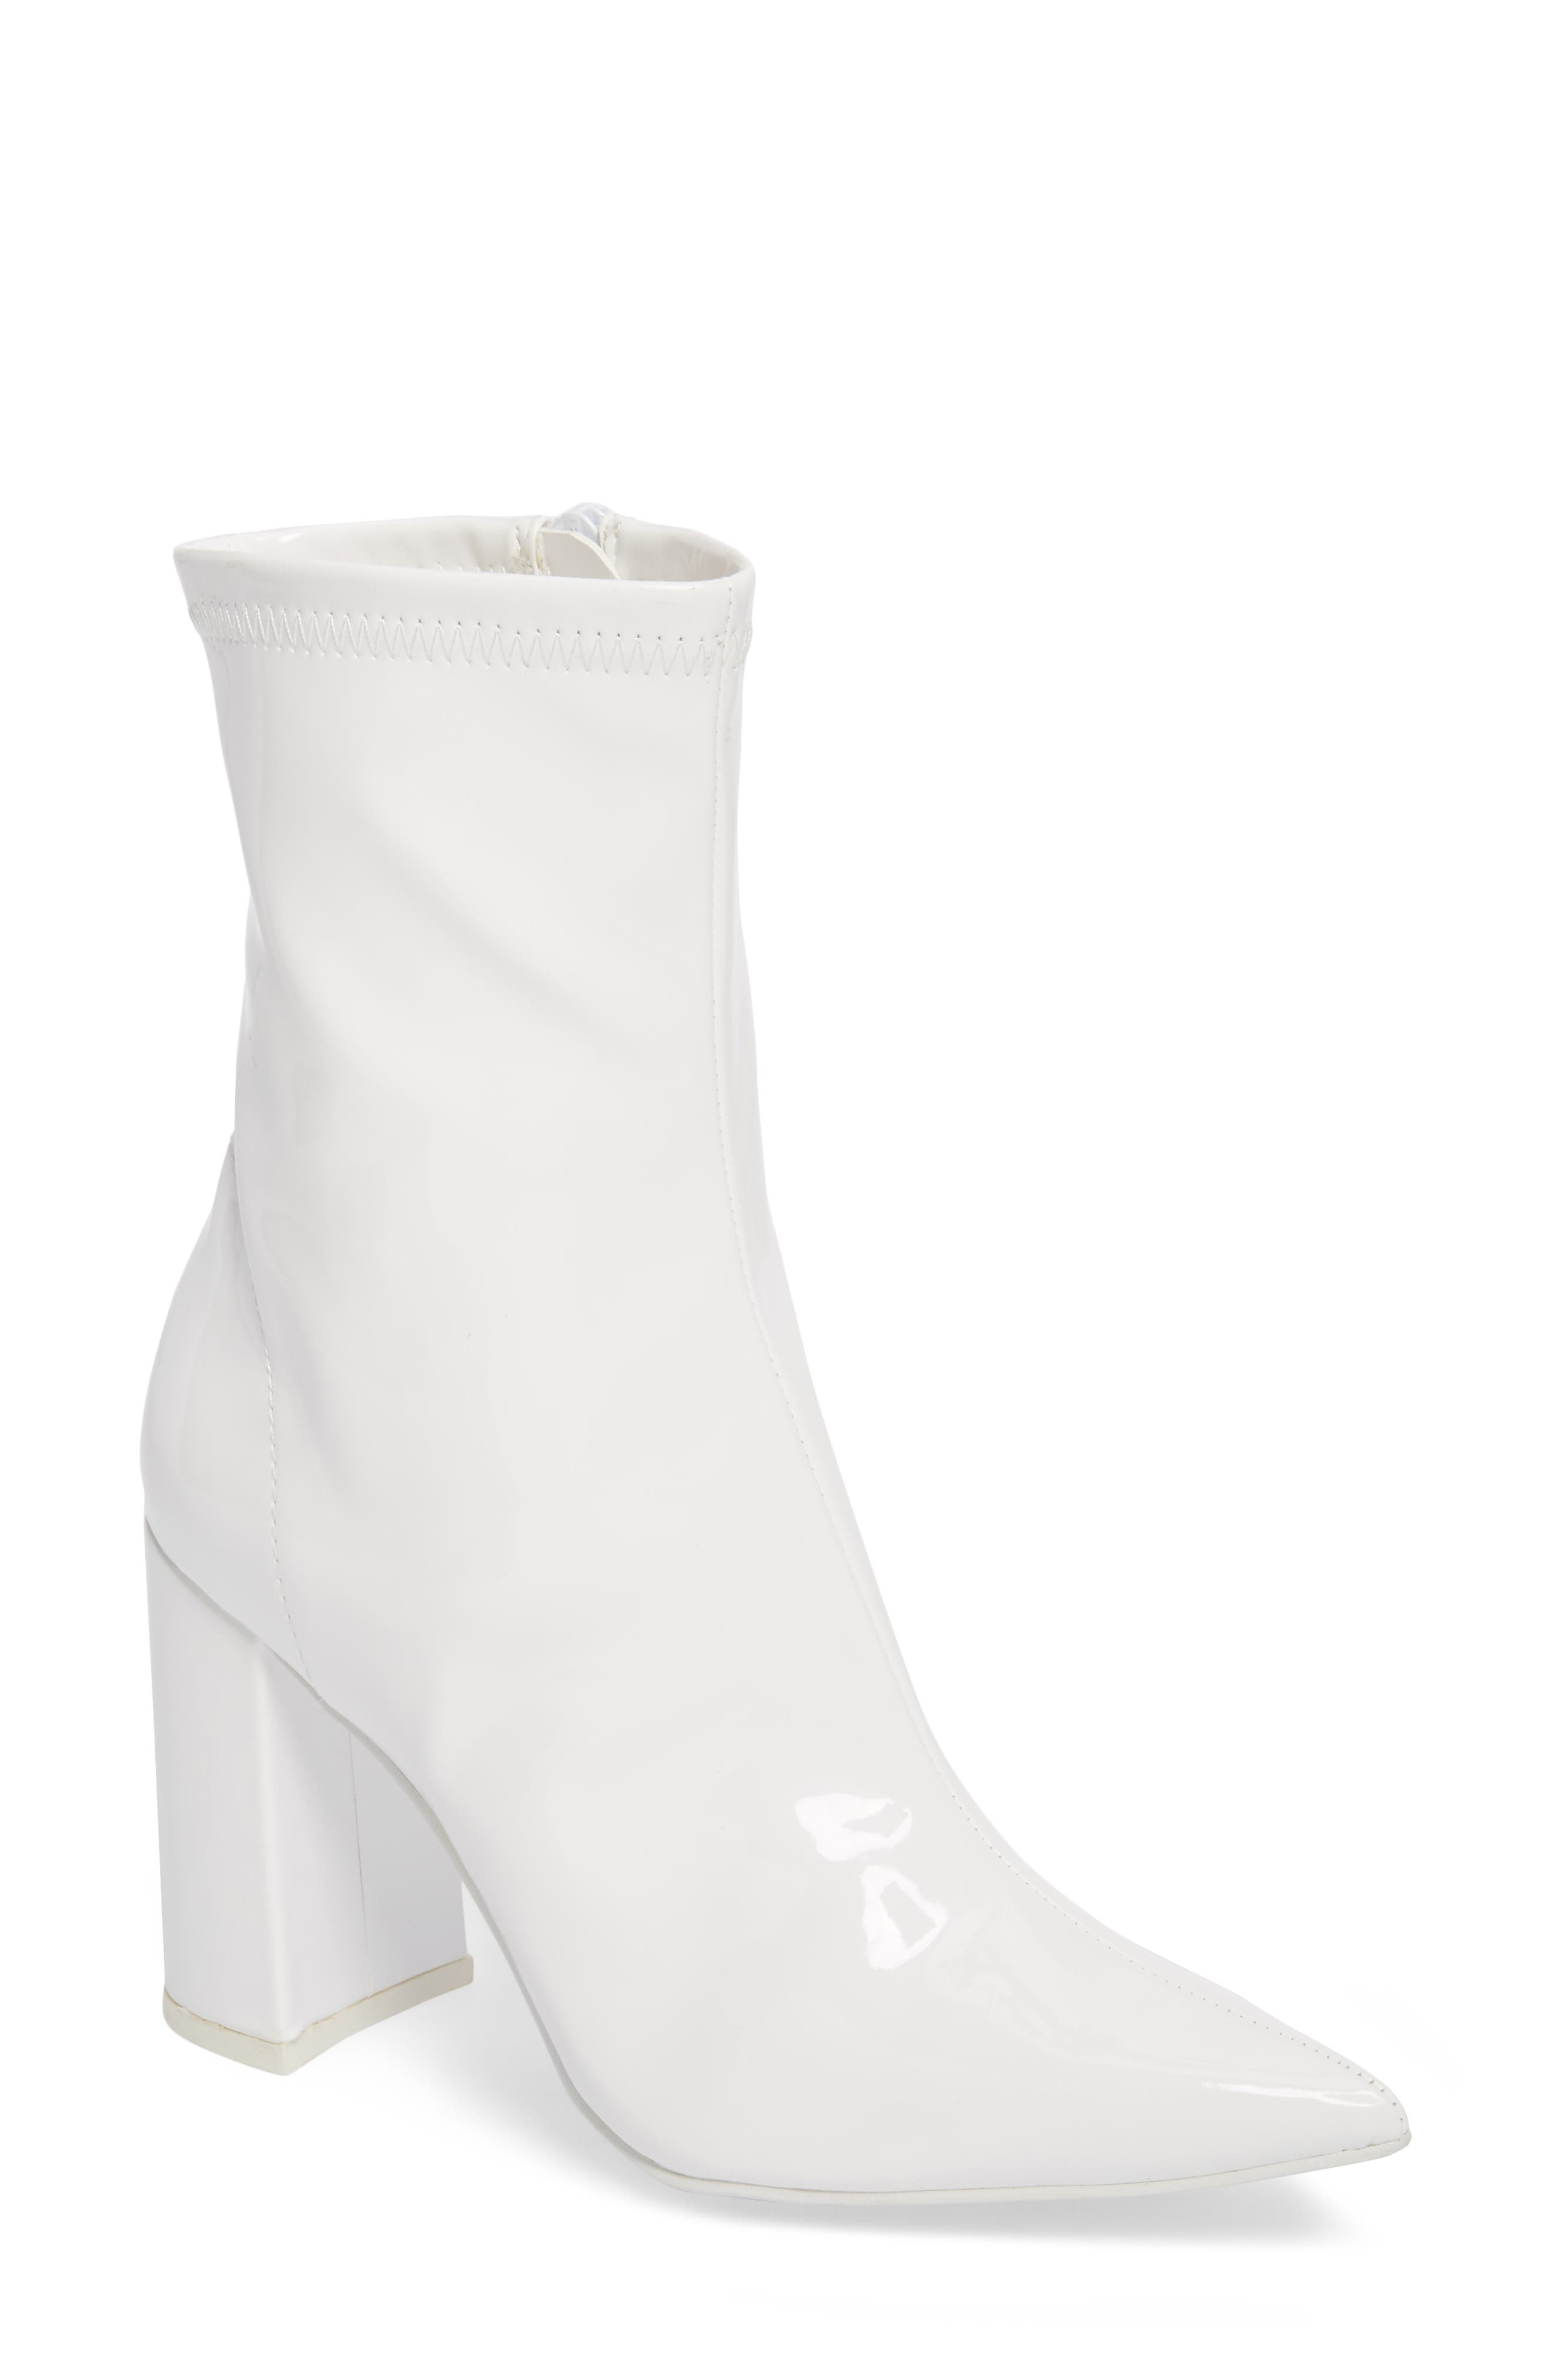 Women's White Ankle Boots & Booties | Nordstrom